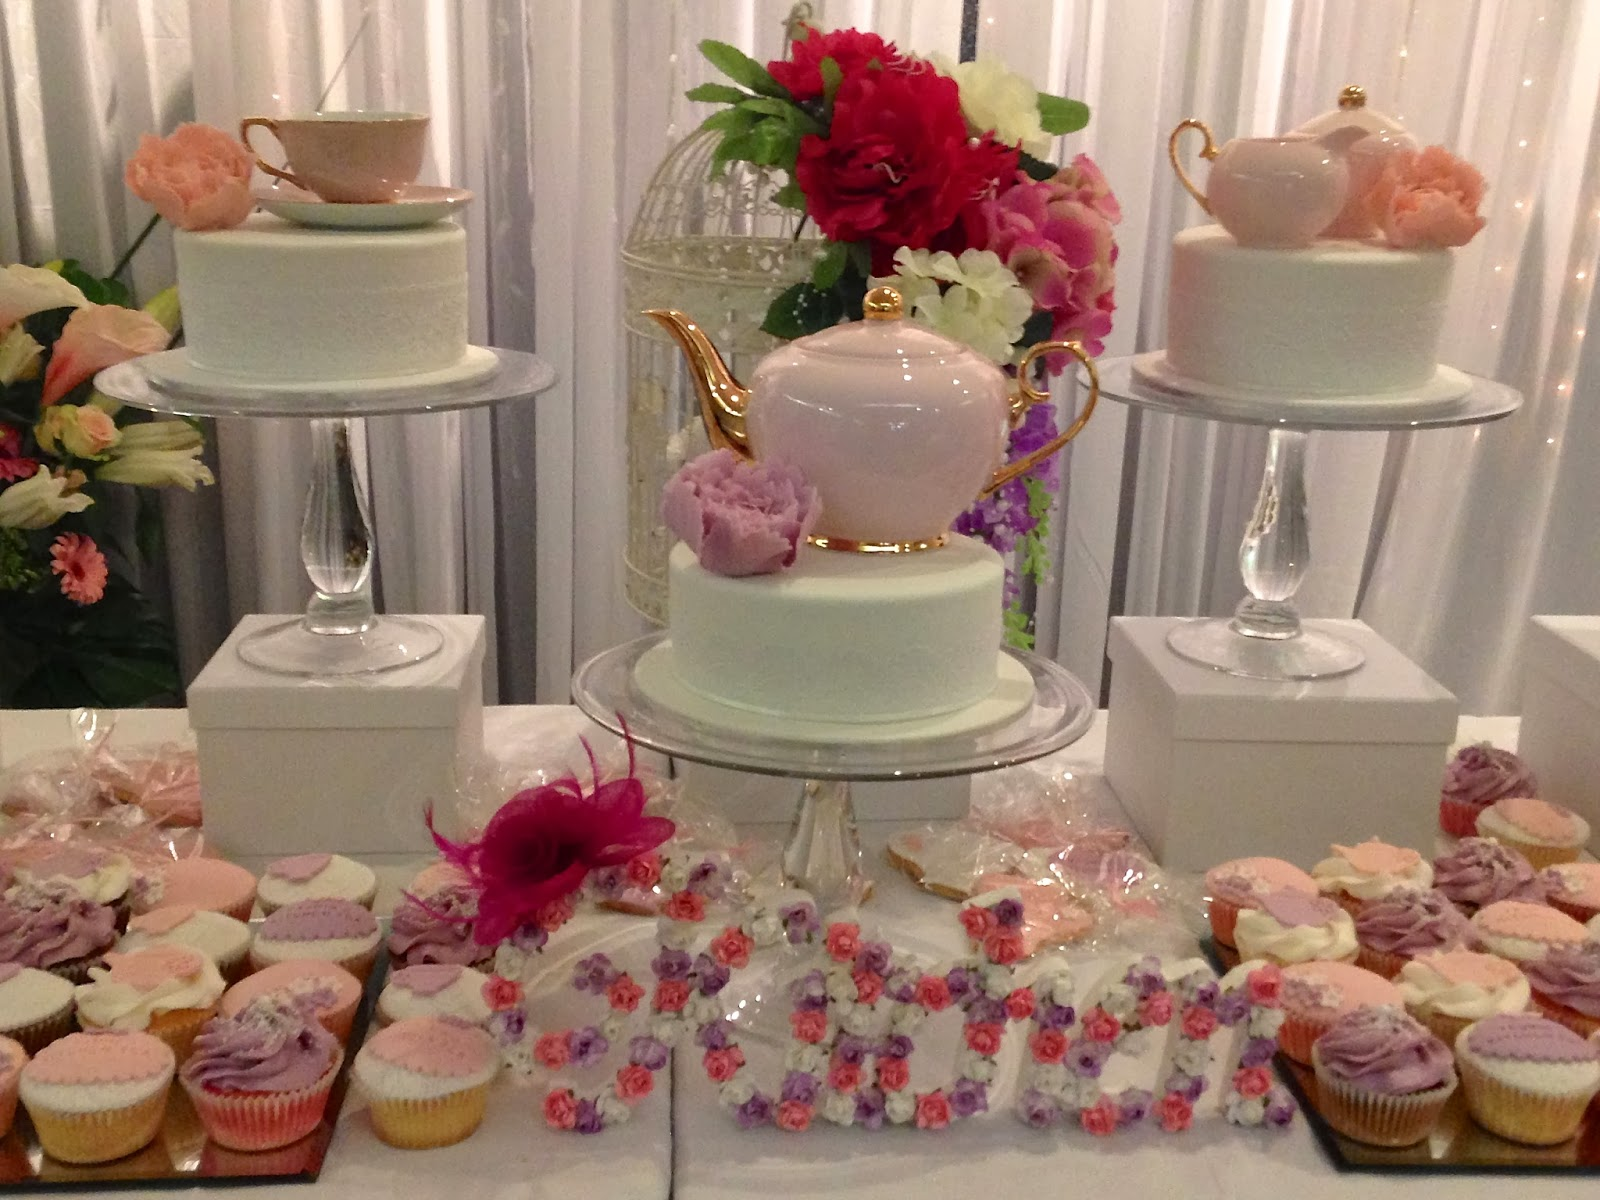 Party Ideas Pretty In Pink, Floral Kitchen Tea Ideas